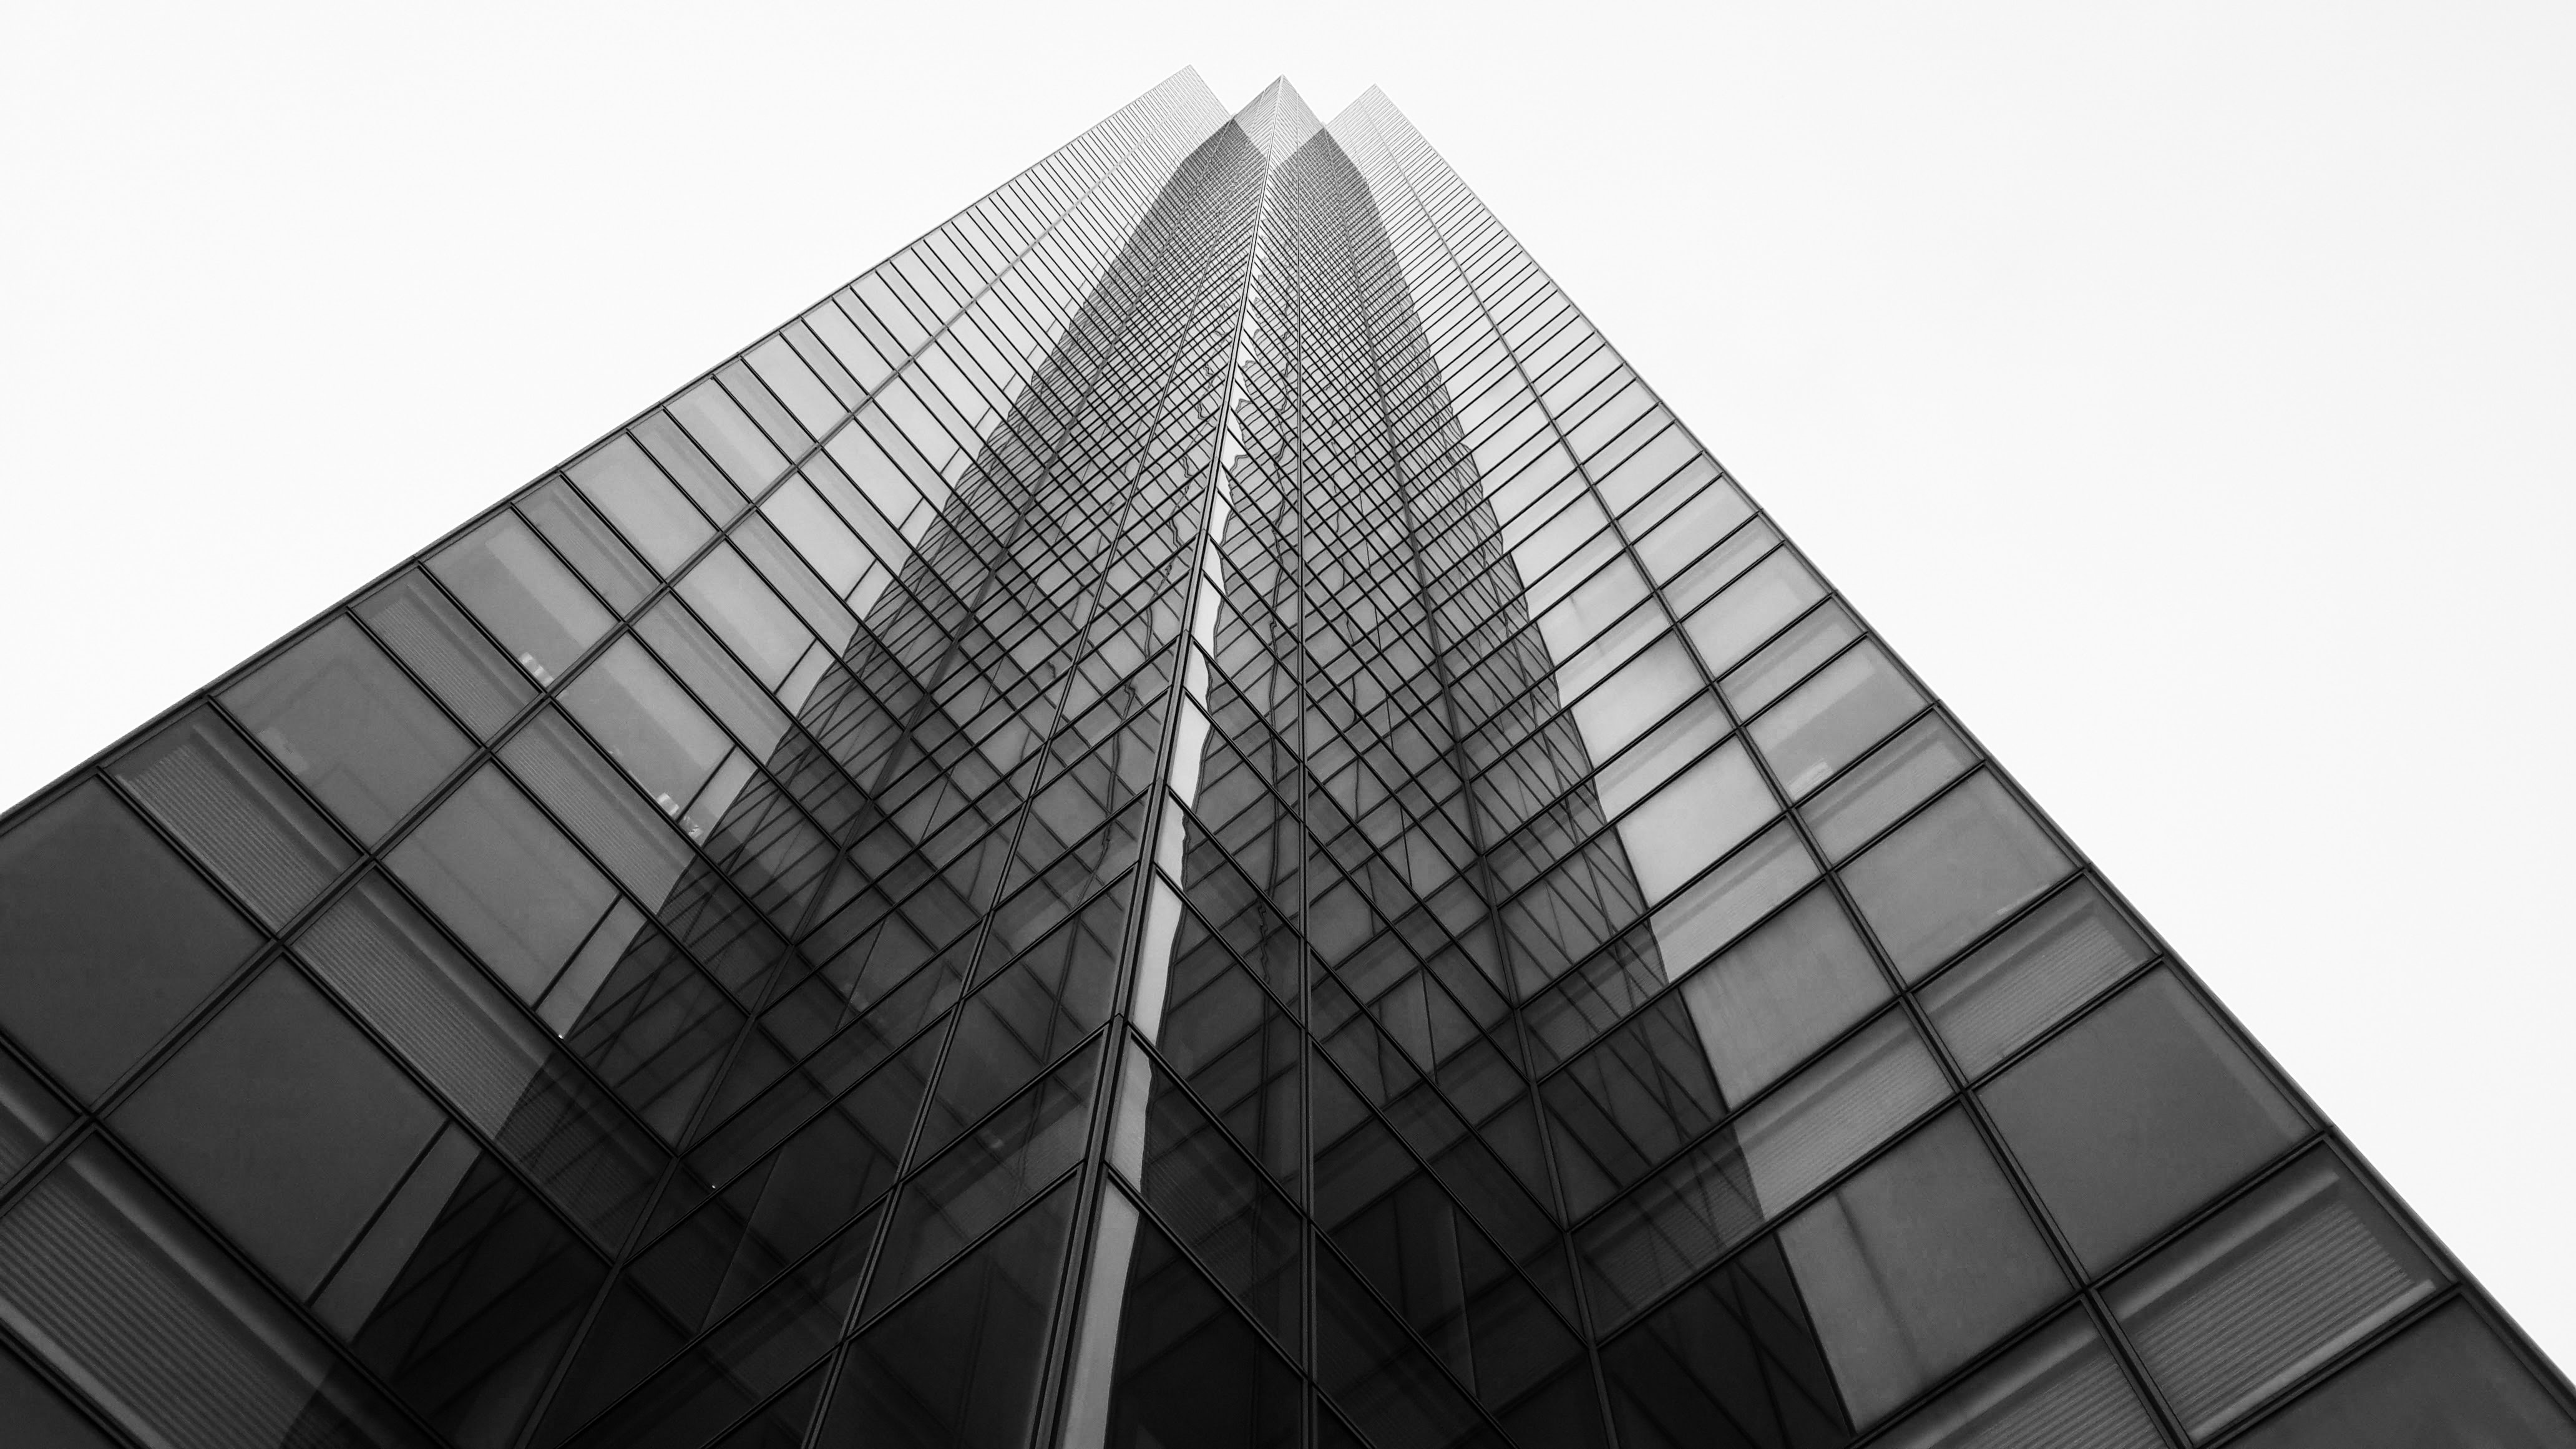 low angle view photography of a high-rise building